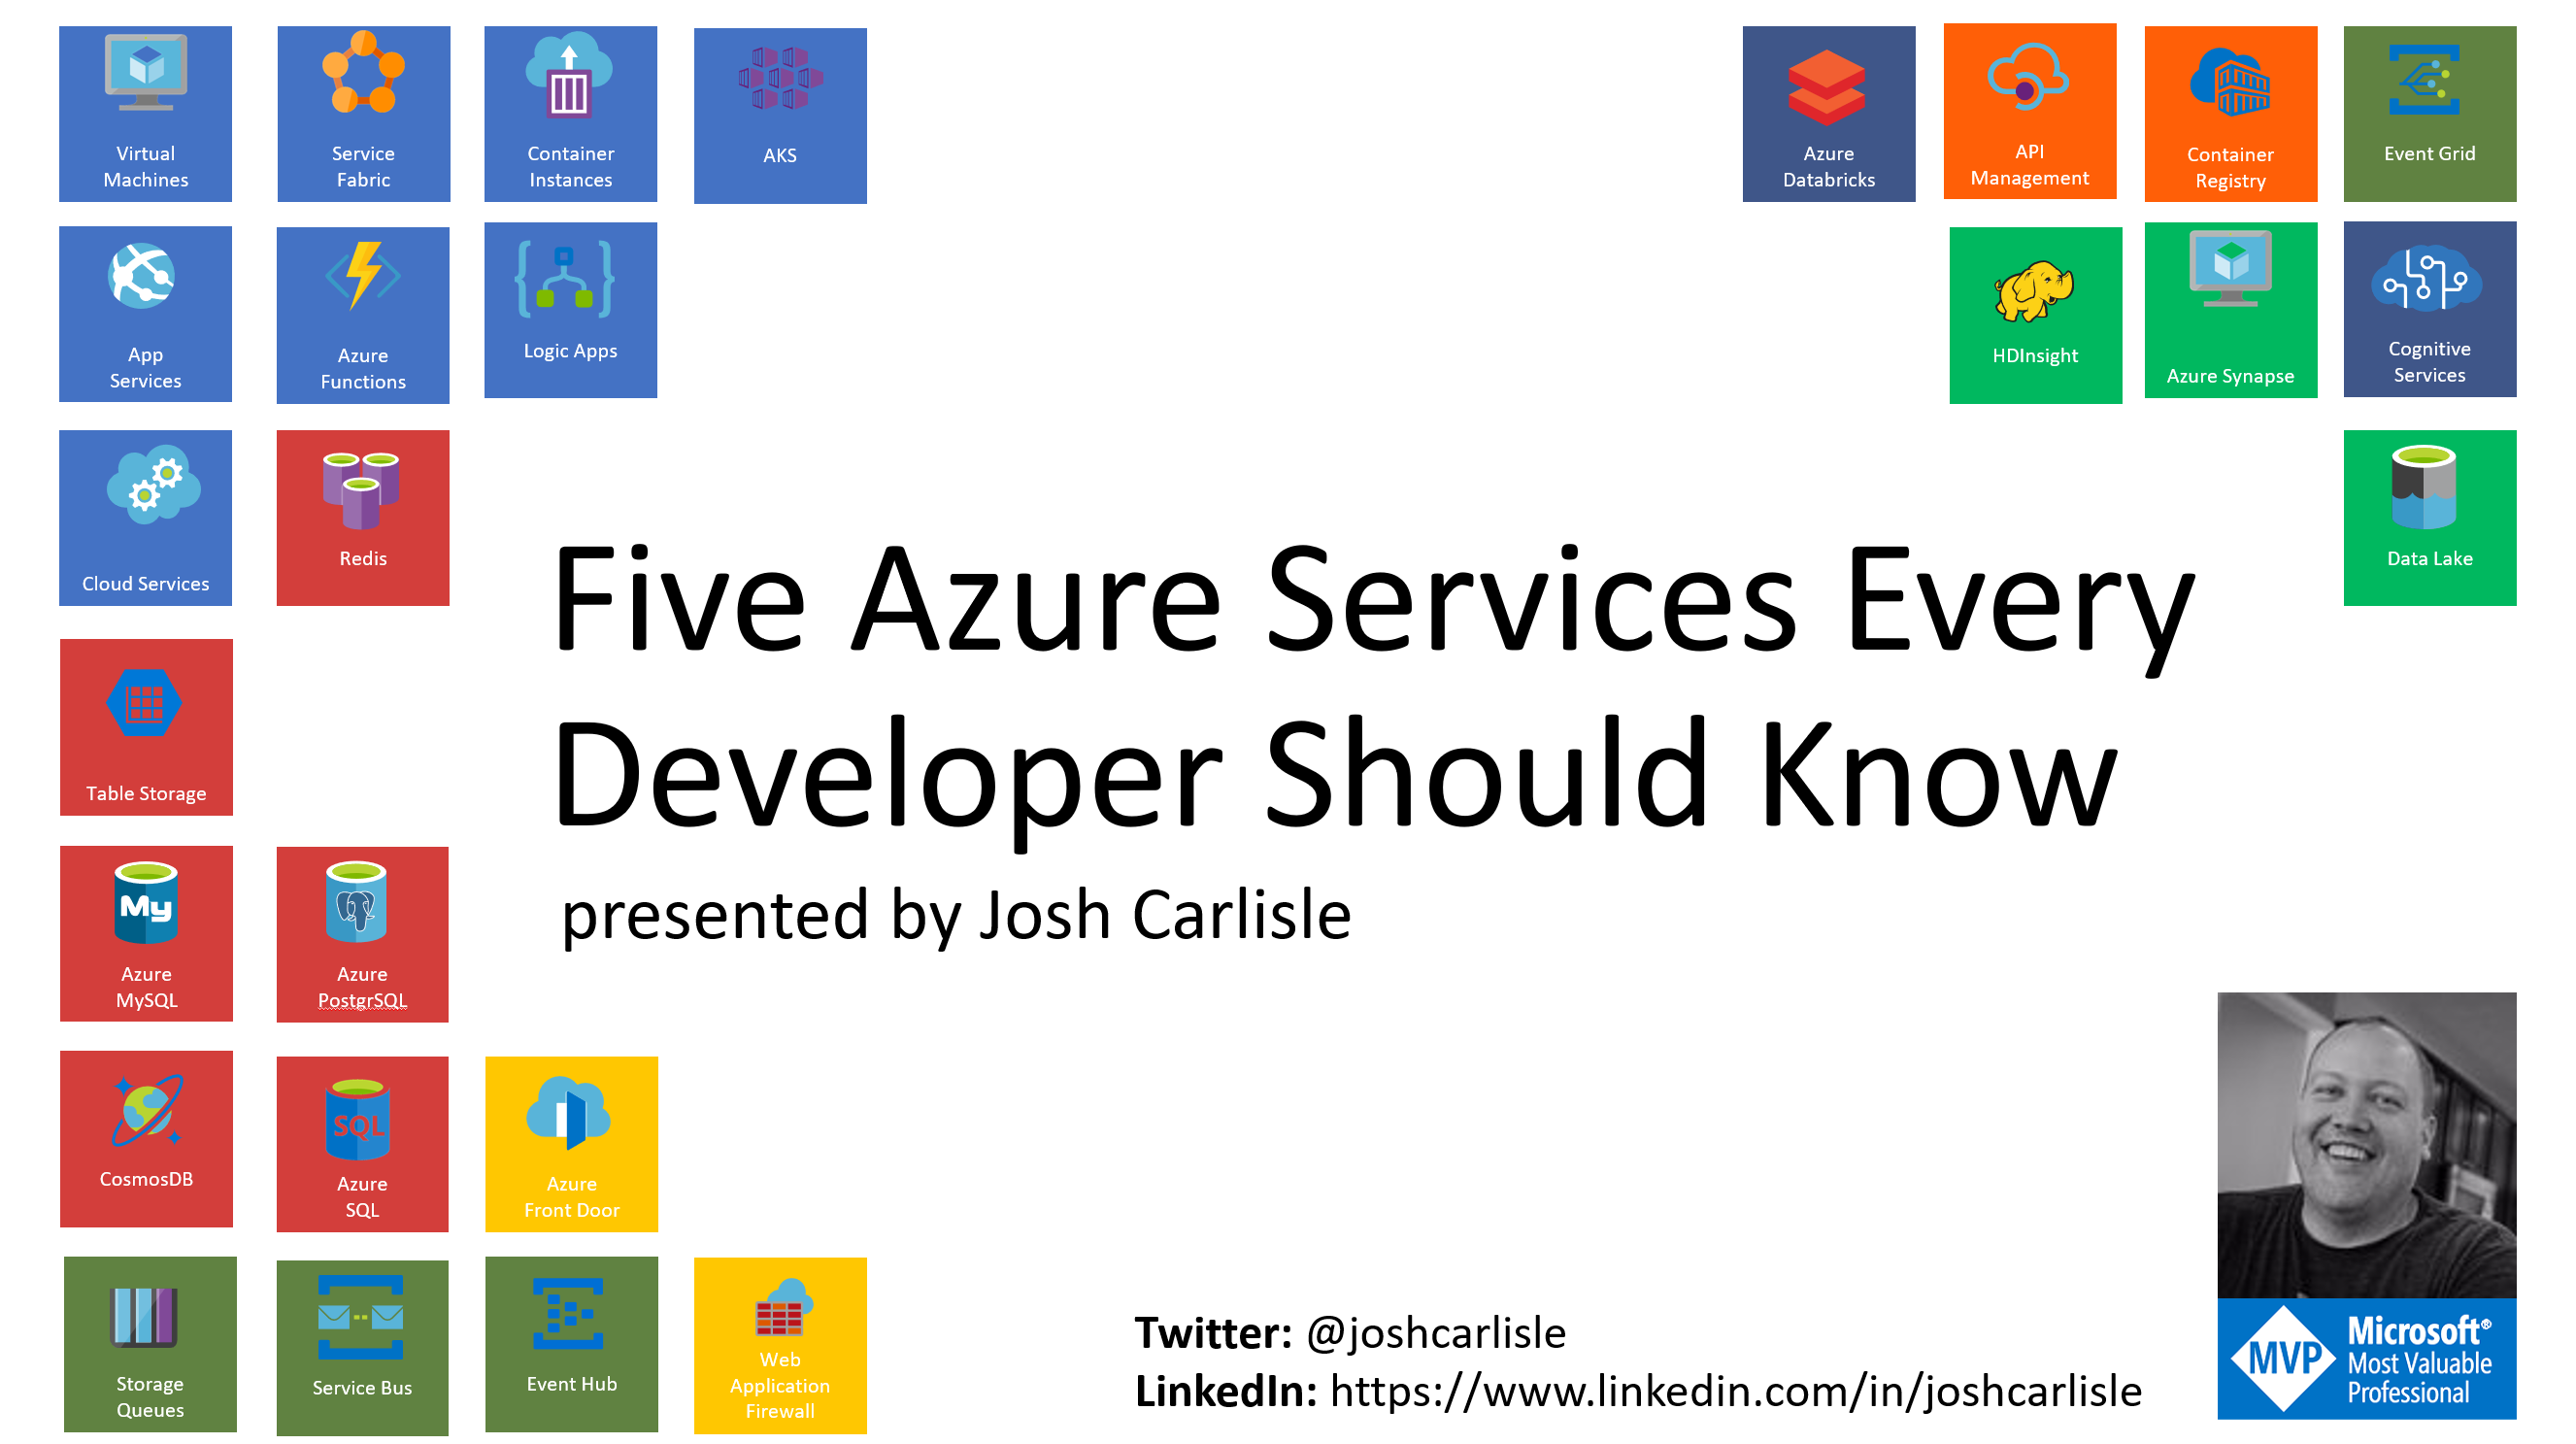 Azure In Atlanta - 5 Azure Services Every Developer Should Know